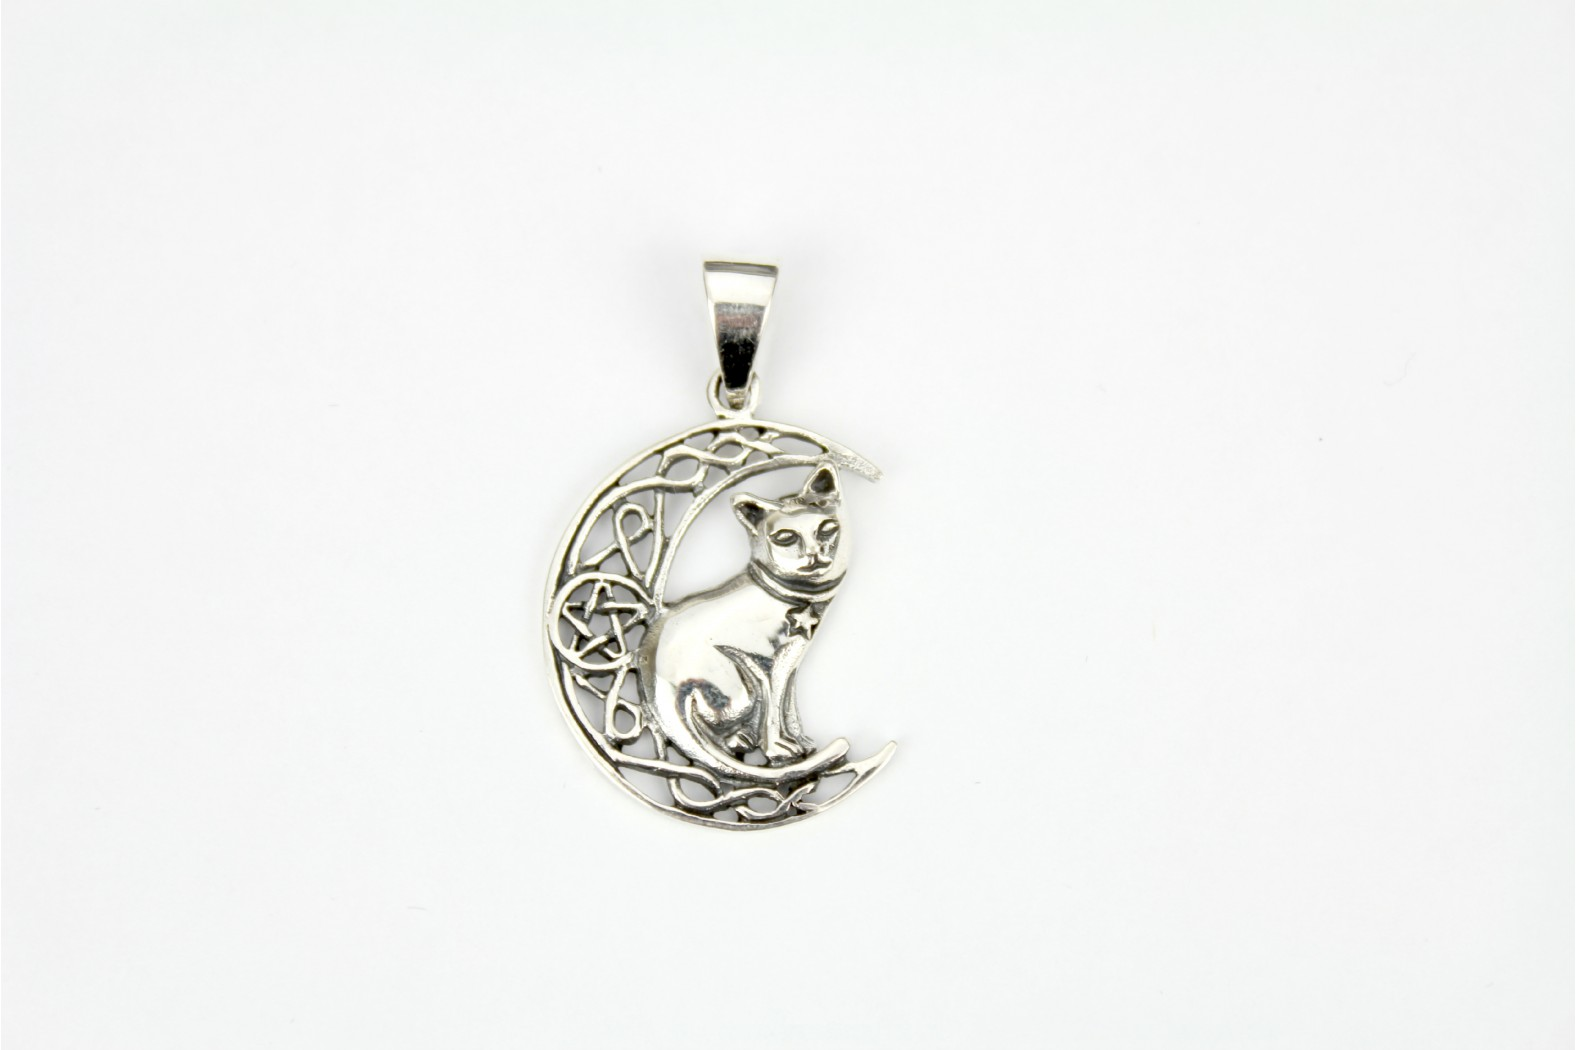 Cat on moon style set on silver detailing. DELIVERY ON THIS ITEM 7 WORKING DAYS.